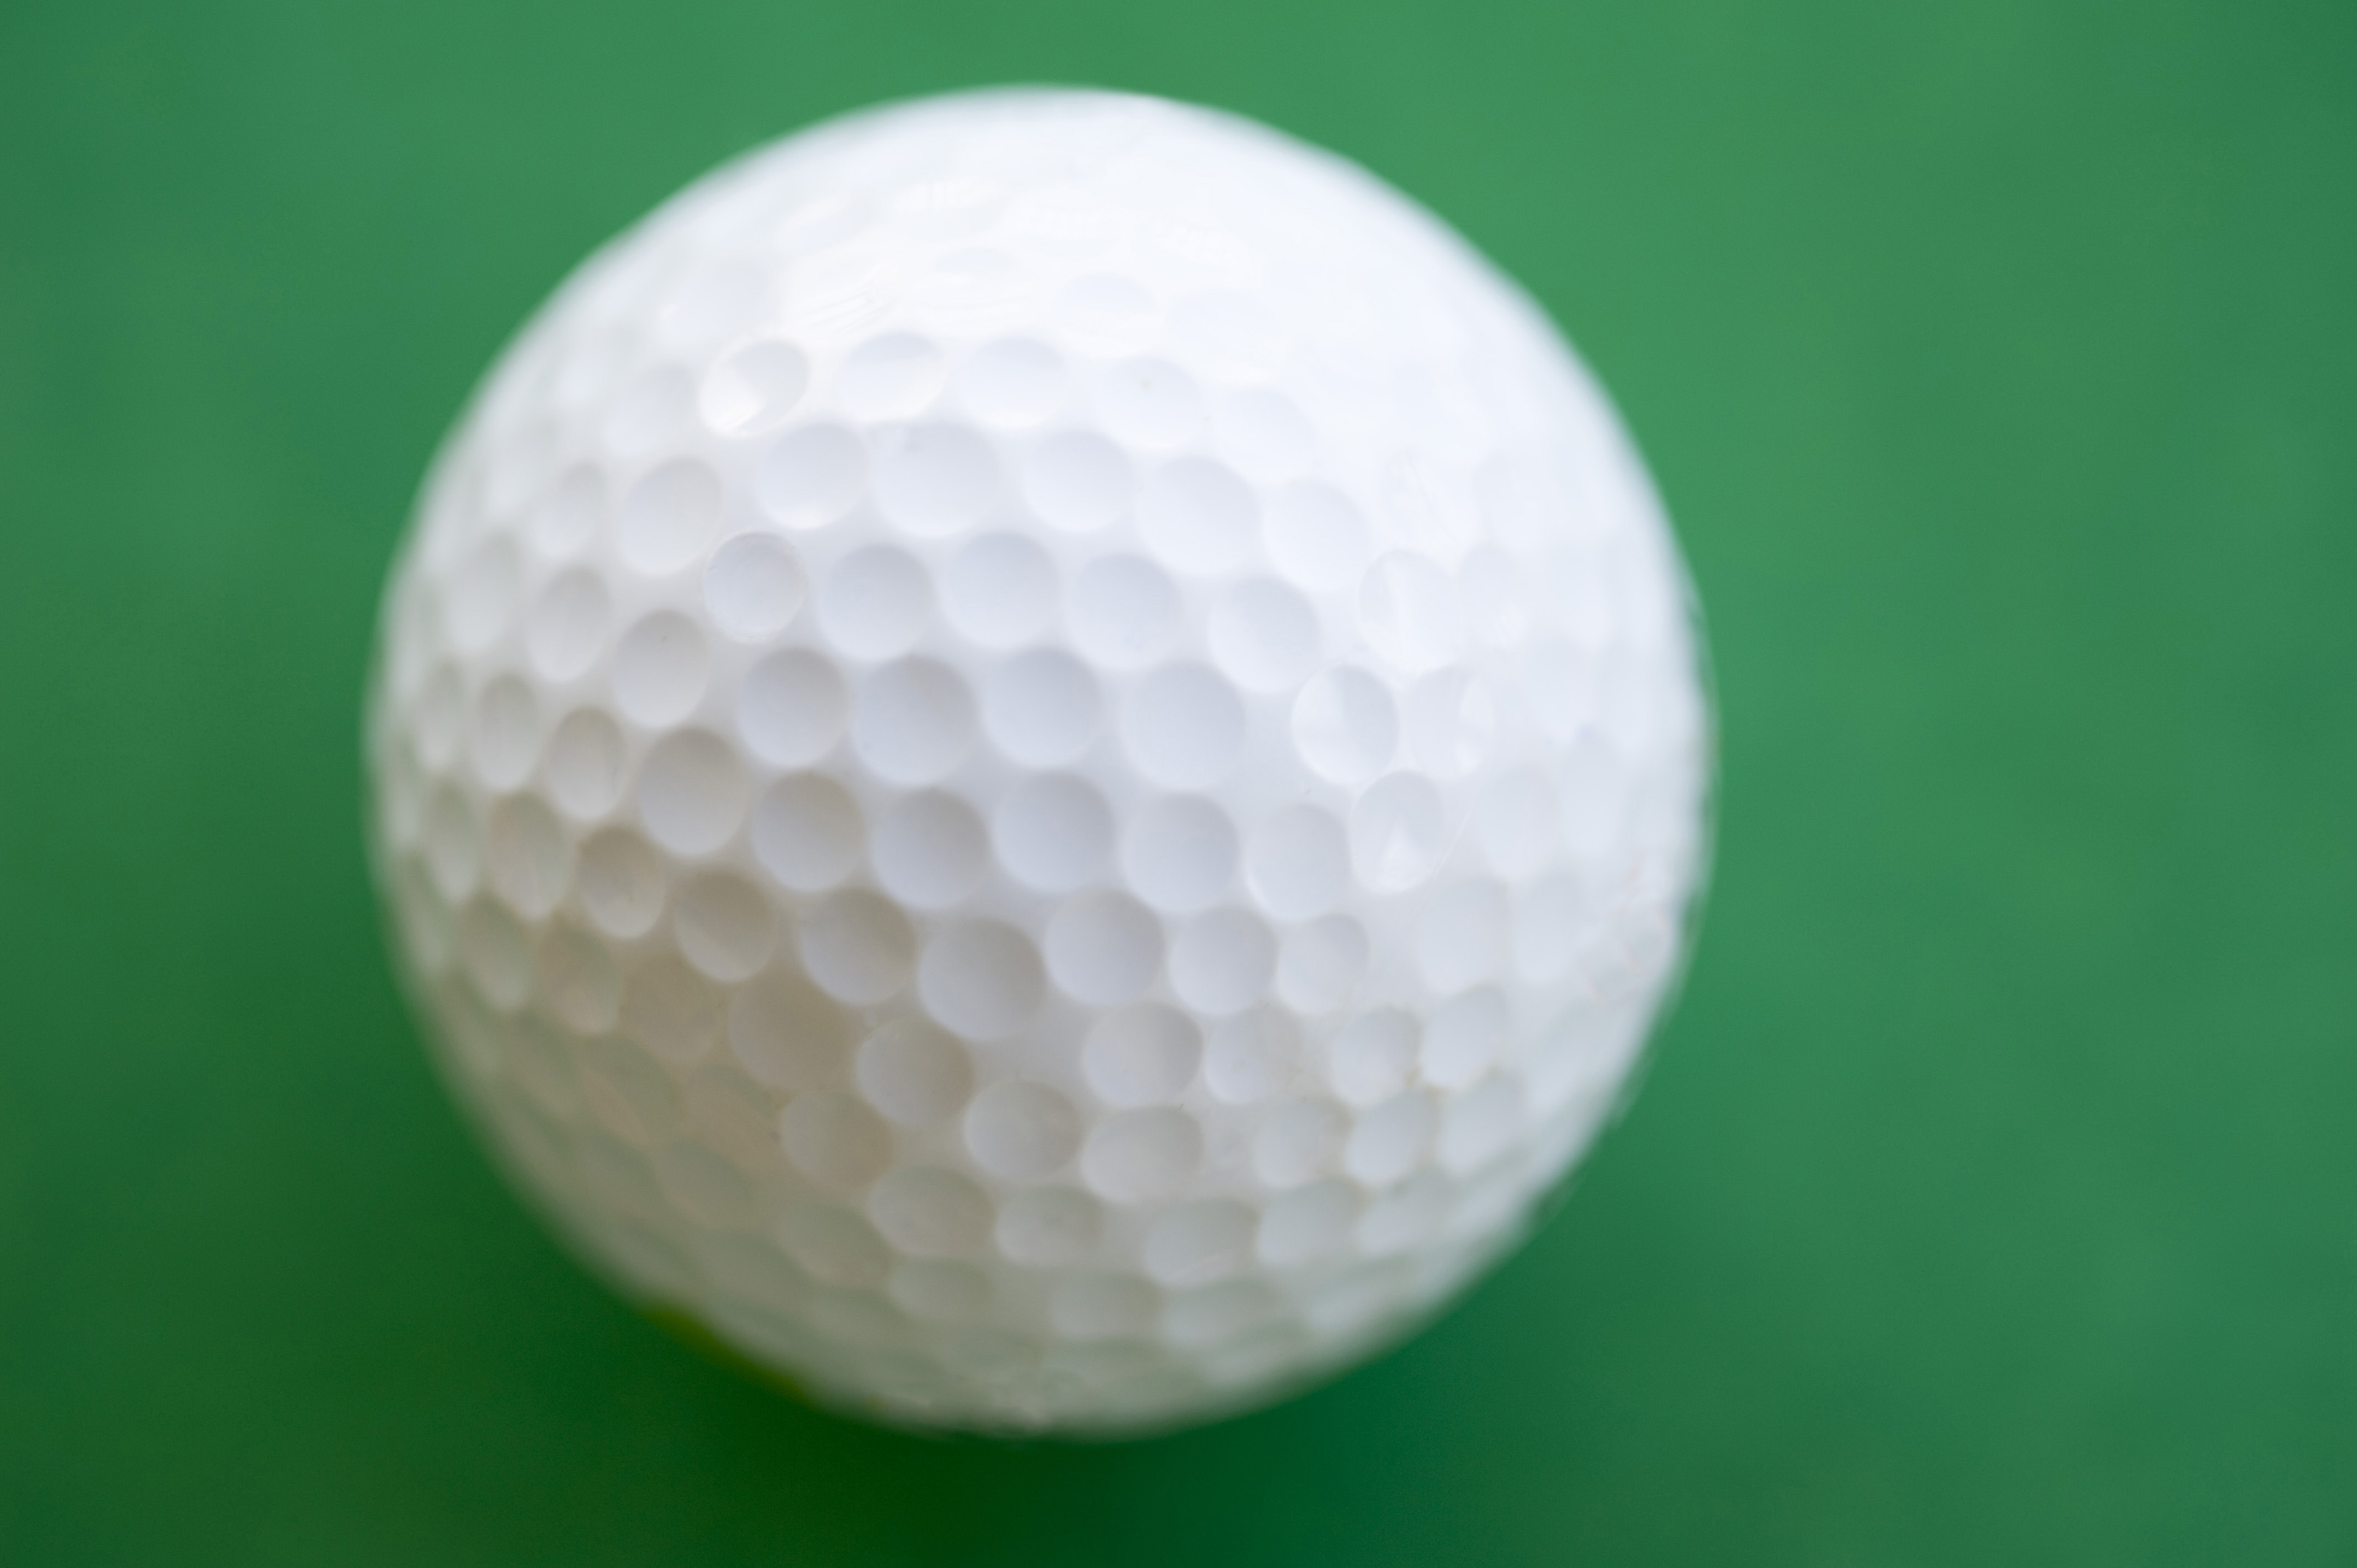 free image of golfball